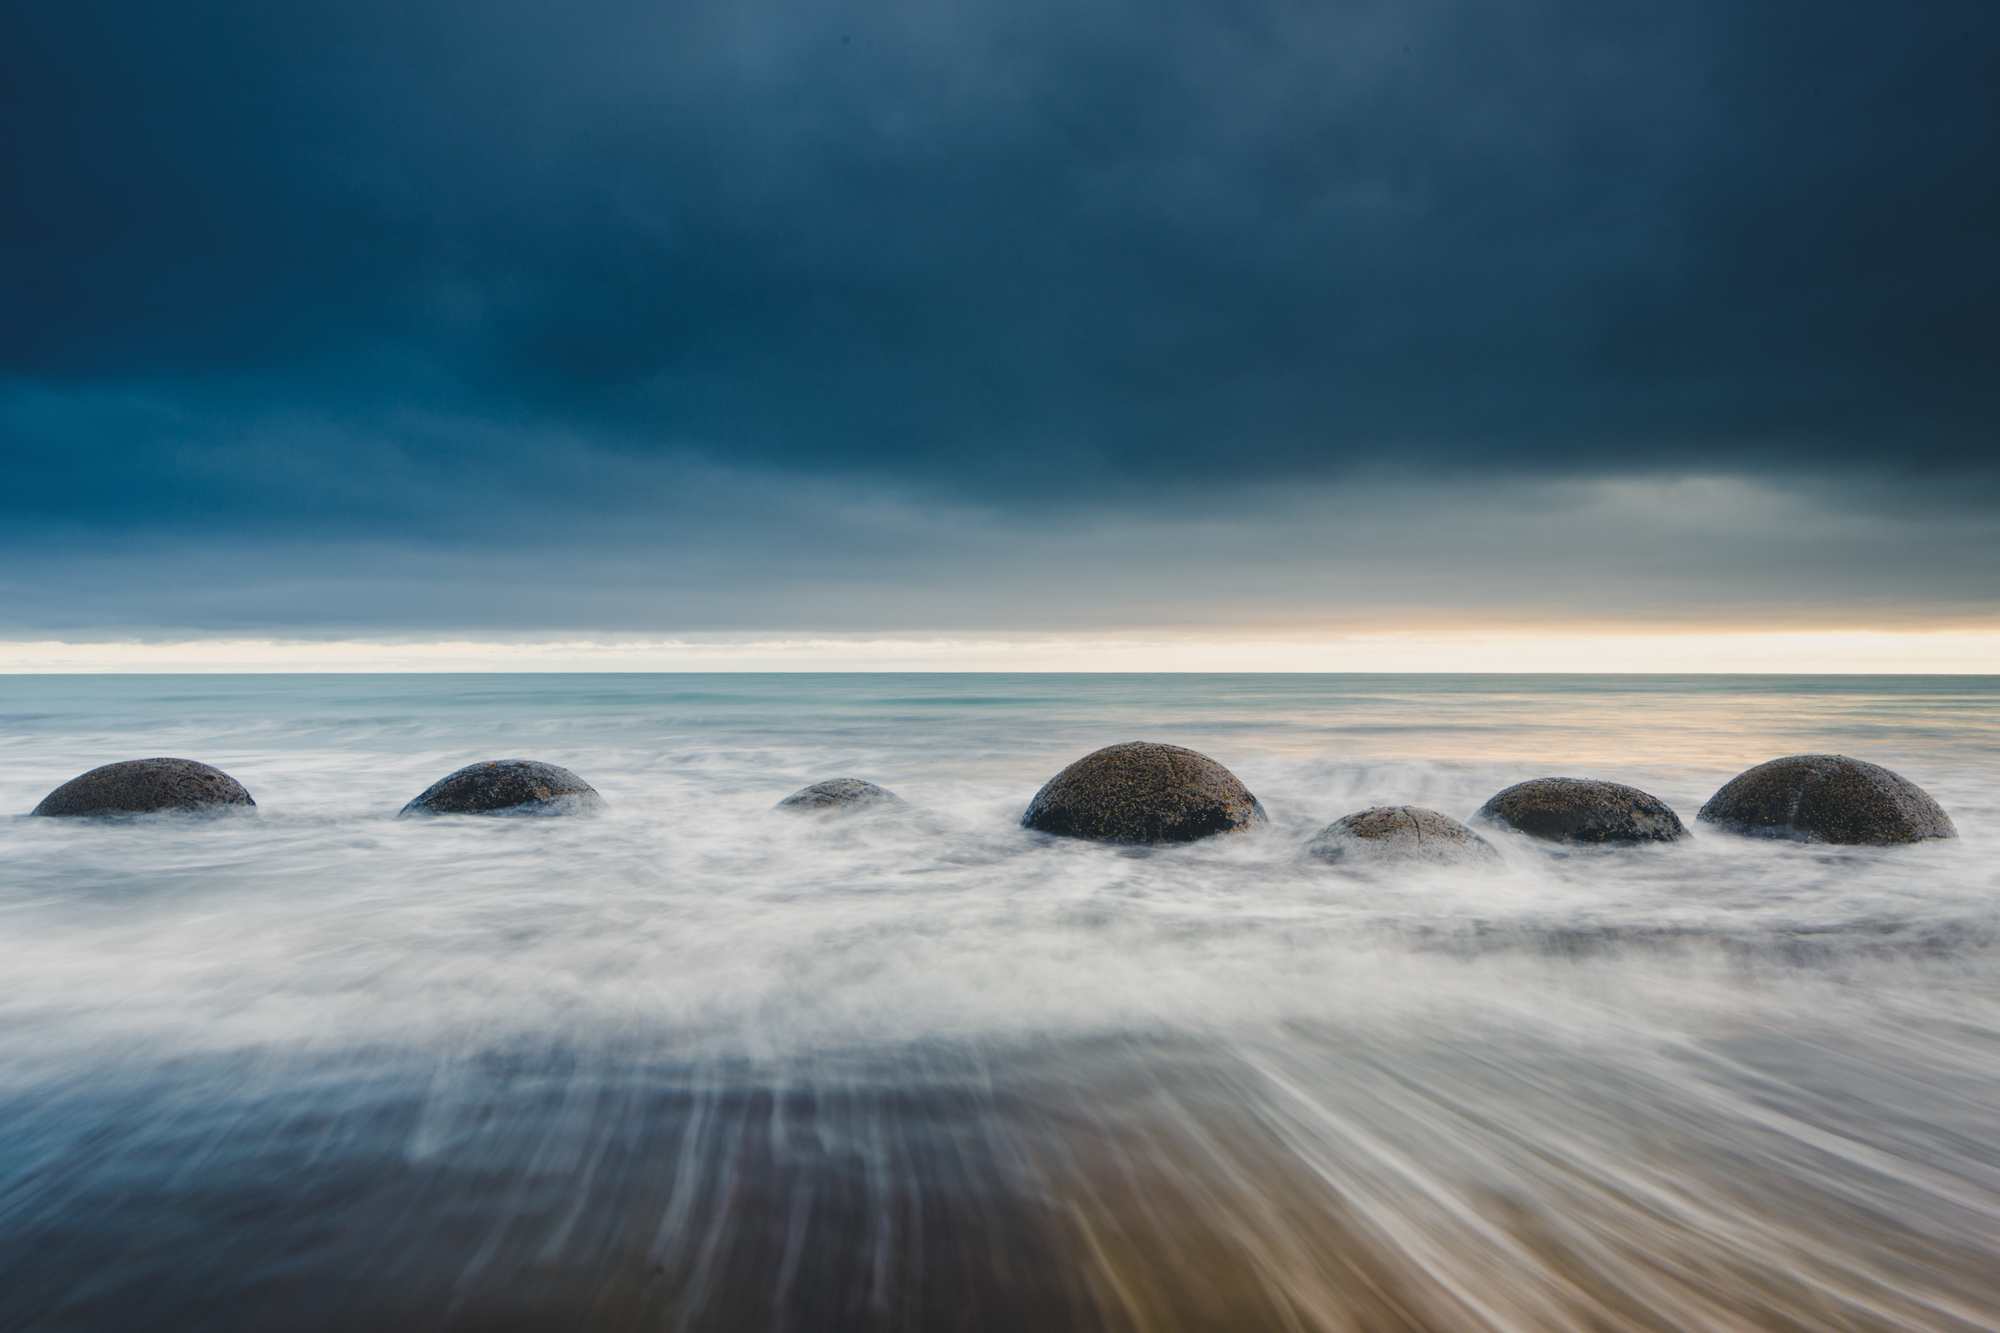 A line of rocks in the waves